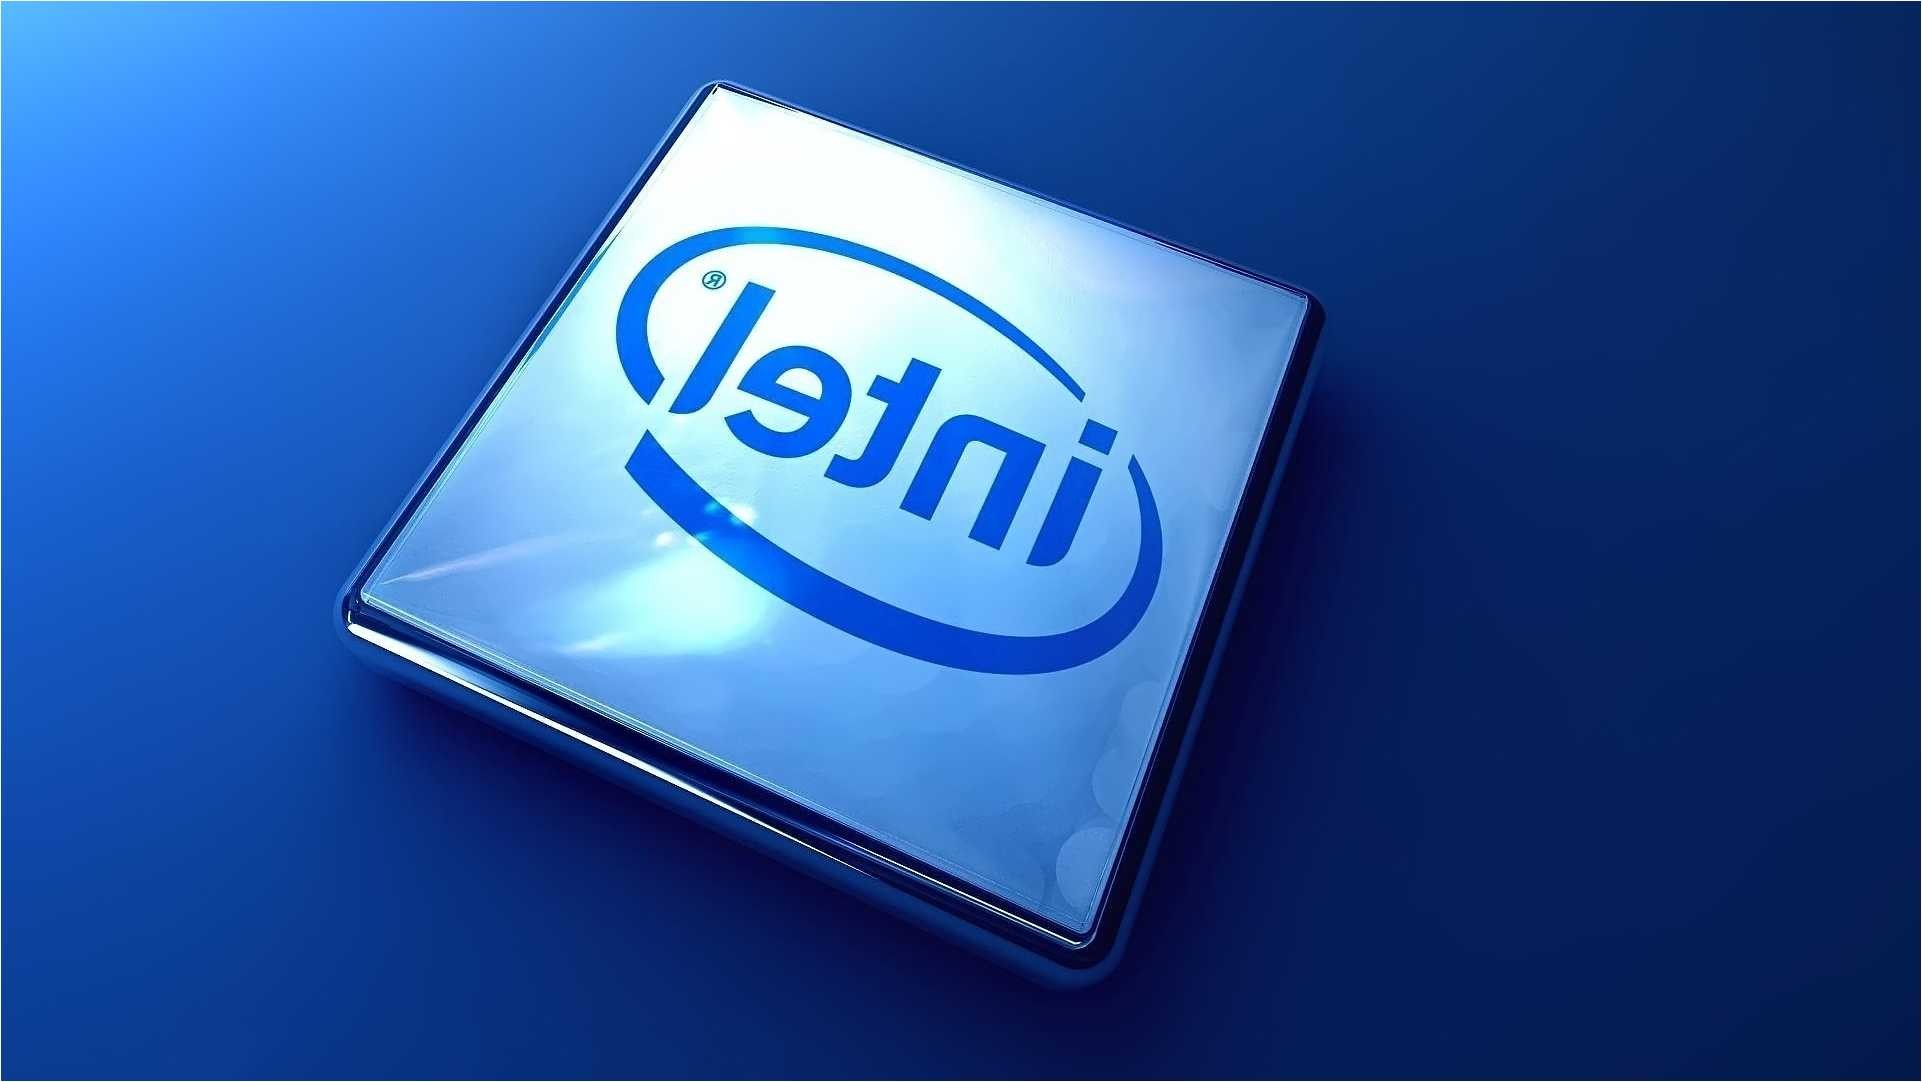 1922x1082 By Naomi Limberg PC.261: Intel Images